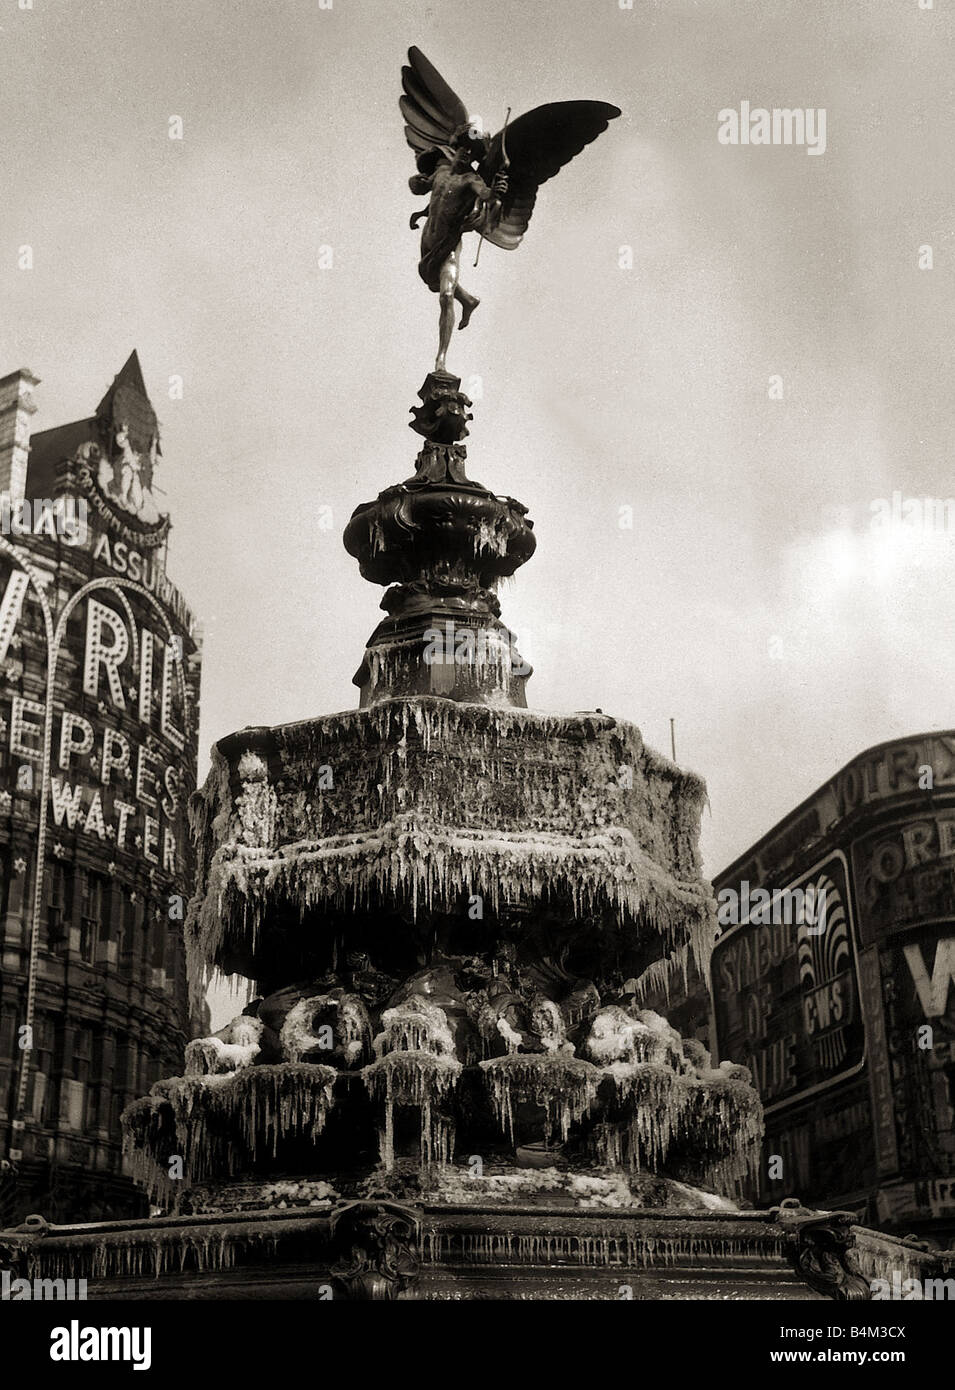 The statue of Eros in London February 1956 the fountain has frozen over forming icicles Stock Photo